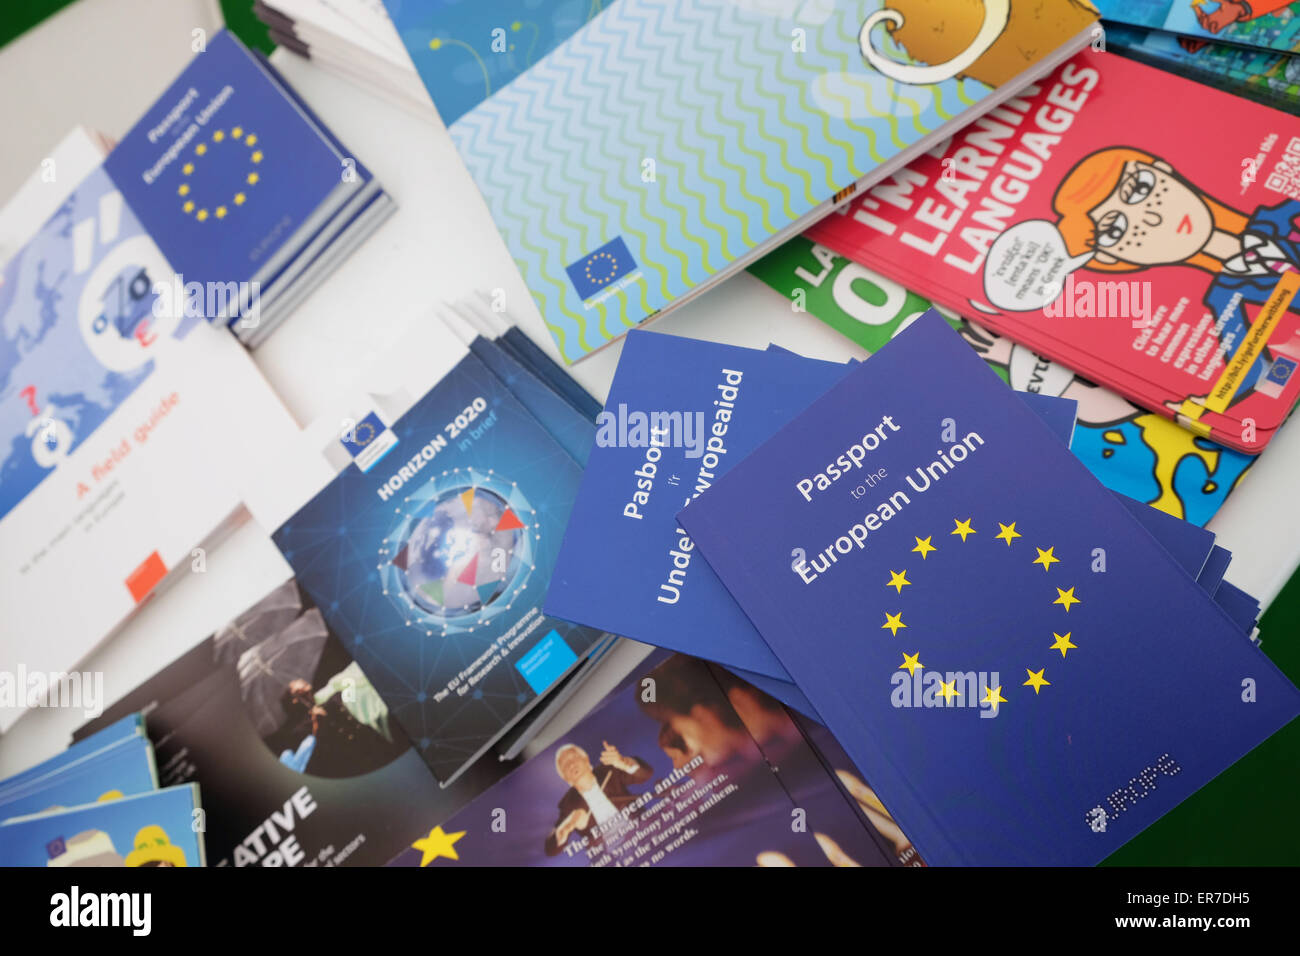 European Union EU promotional stand at the Hay Festival UK with a wide range of marketing material primarily aimed - Stock Image